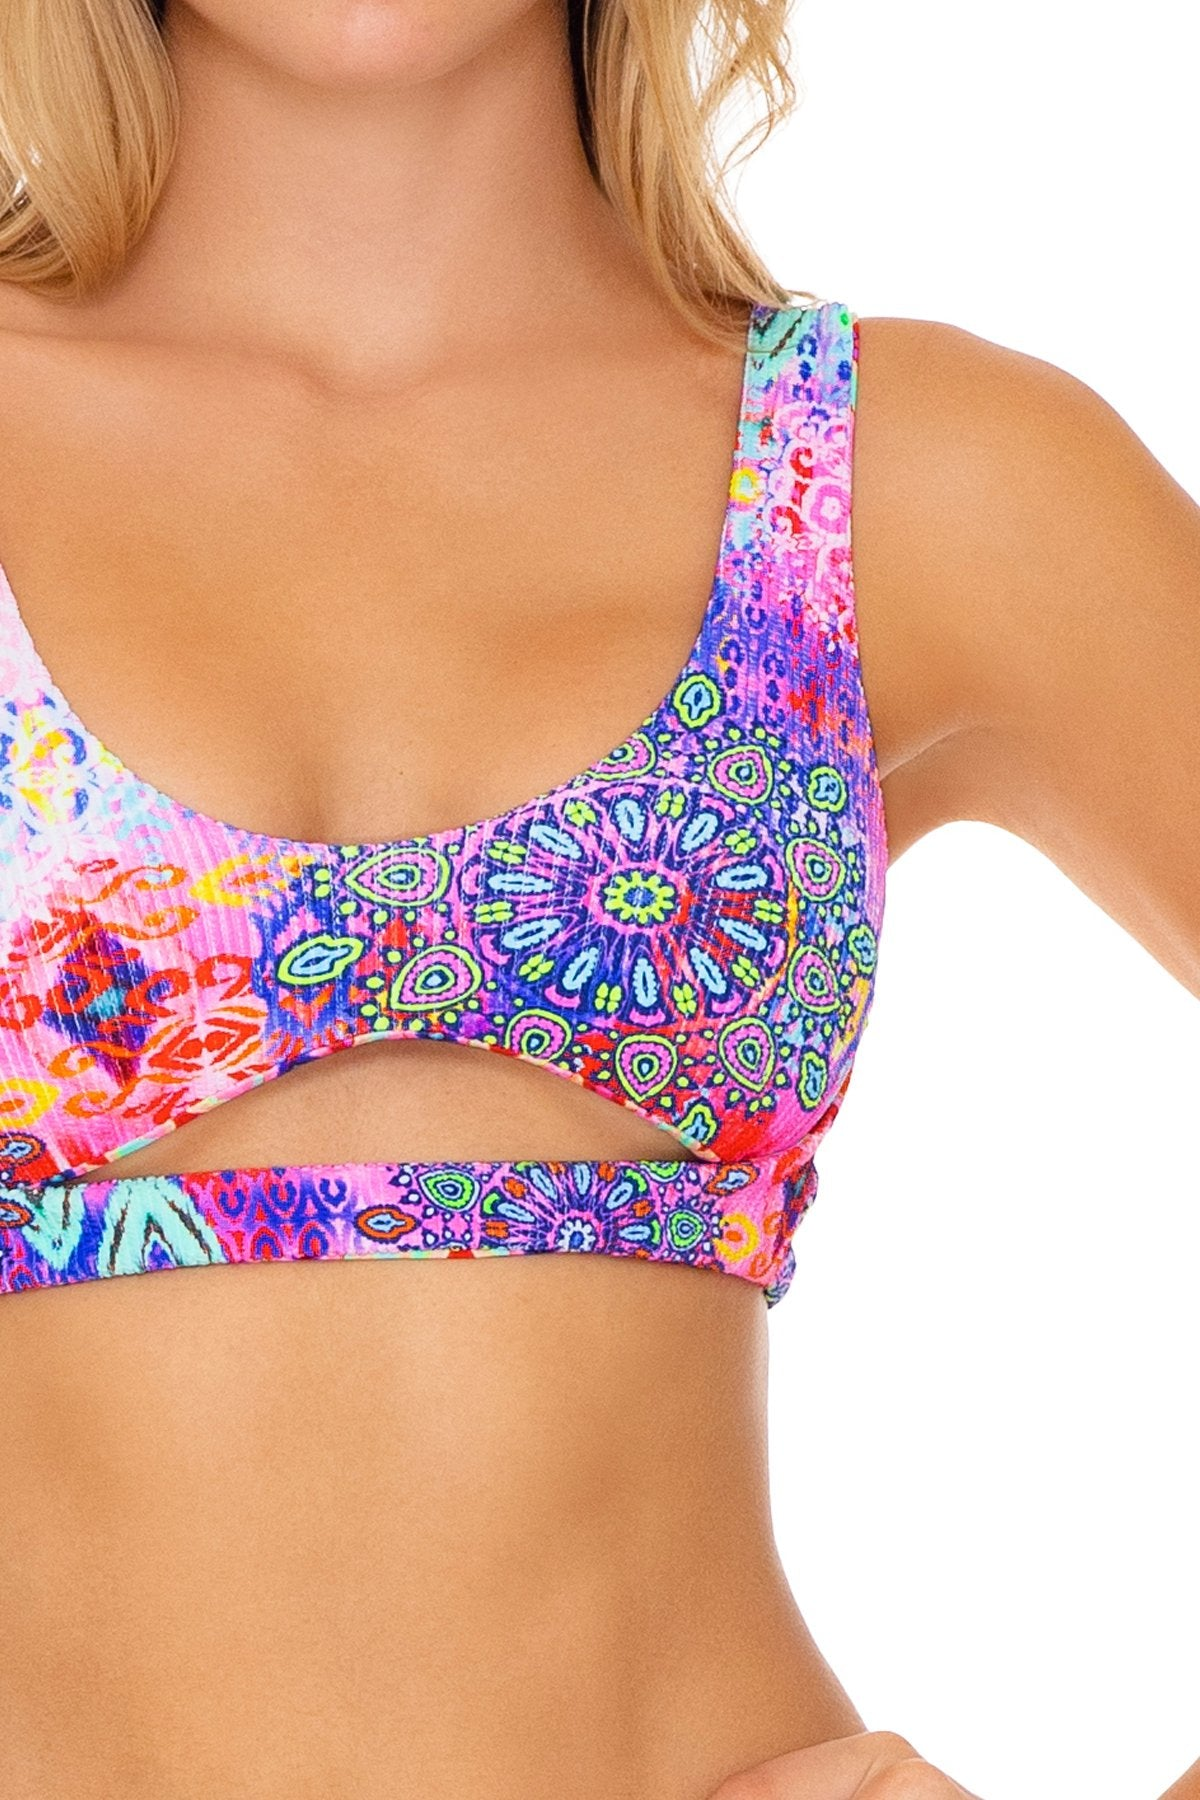 PINK LAGOON - Open Front Bralette & Banded Moderate Bottom • Multicolor